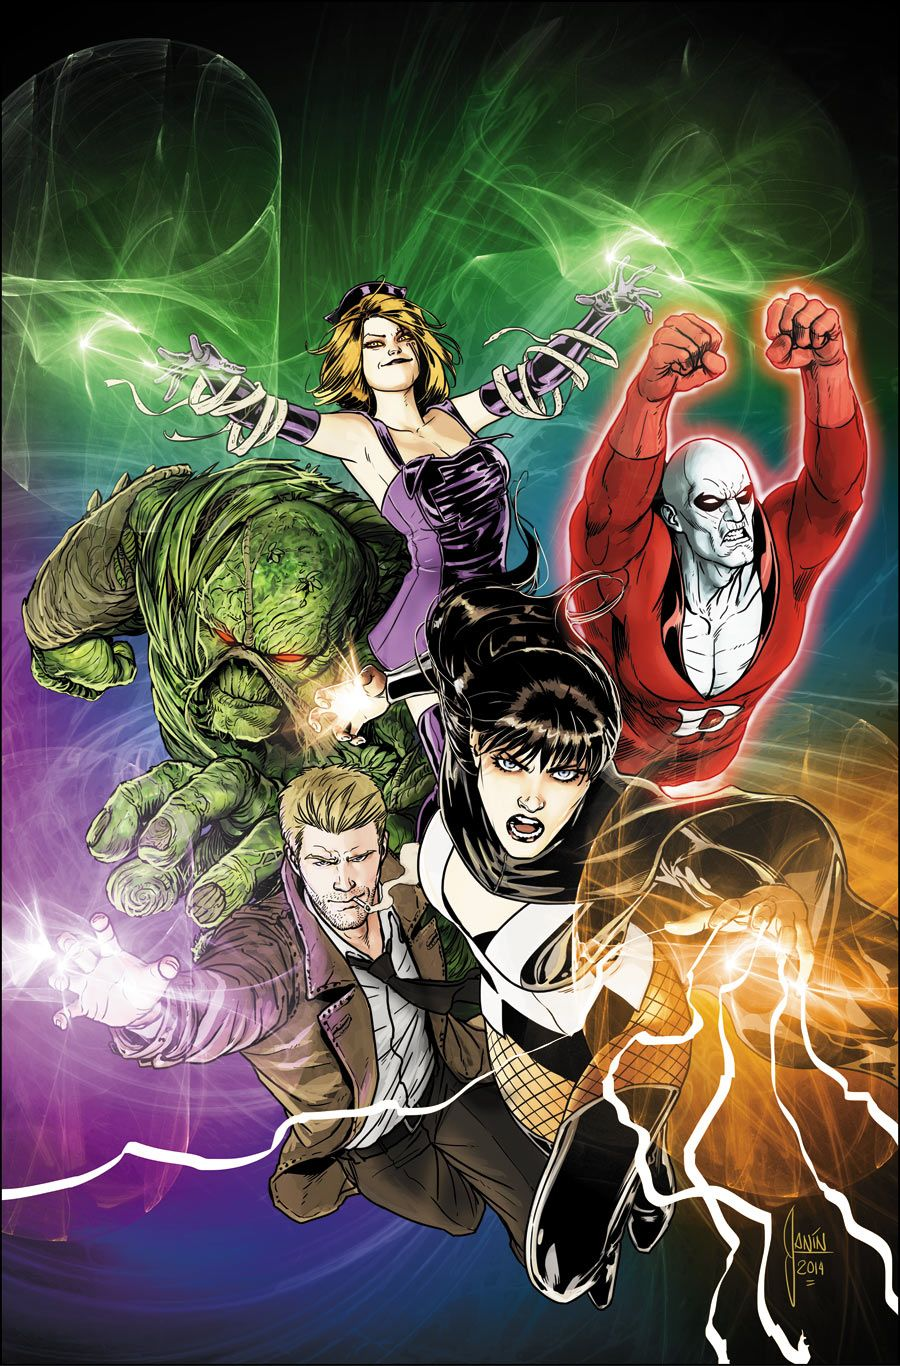 Justice League Dark by Mikel Janin